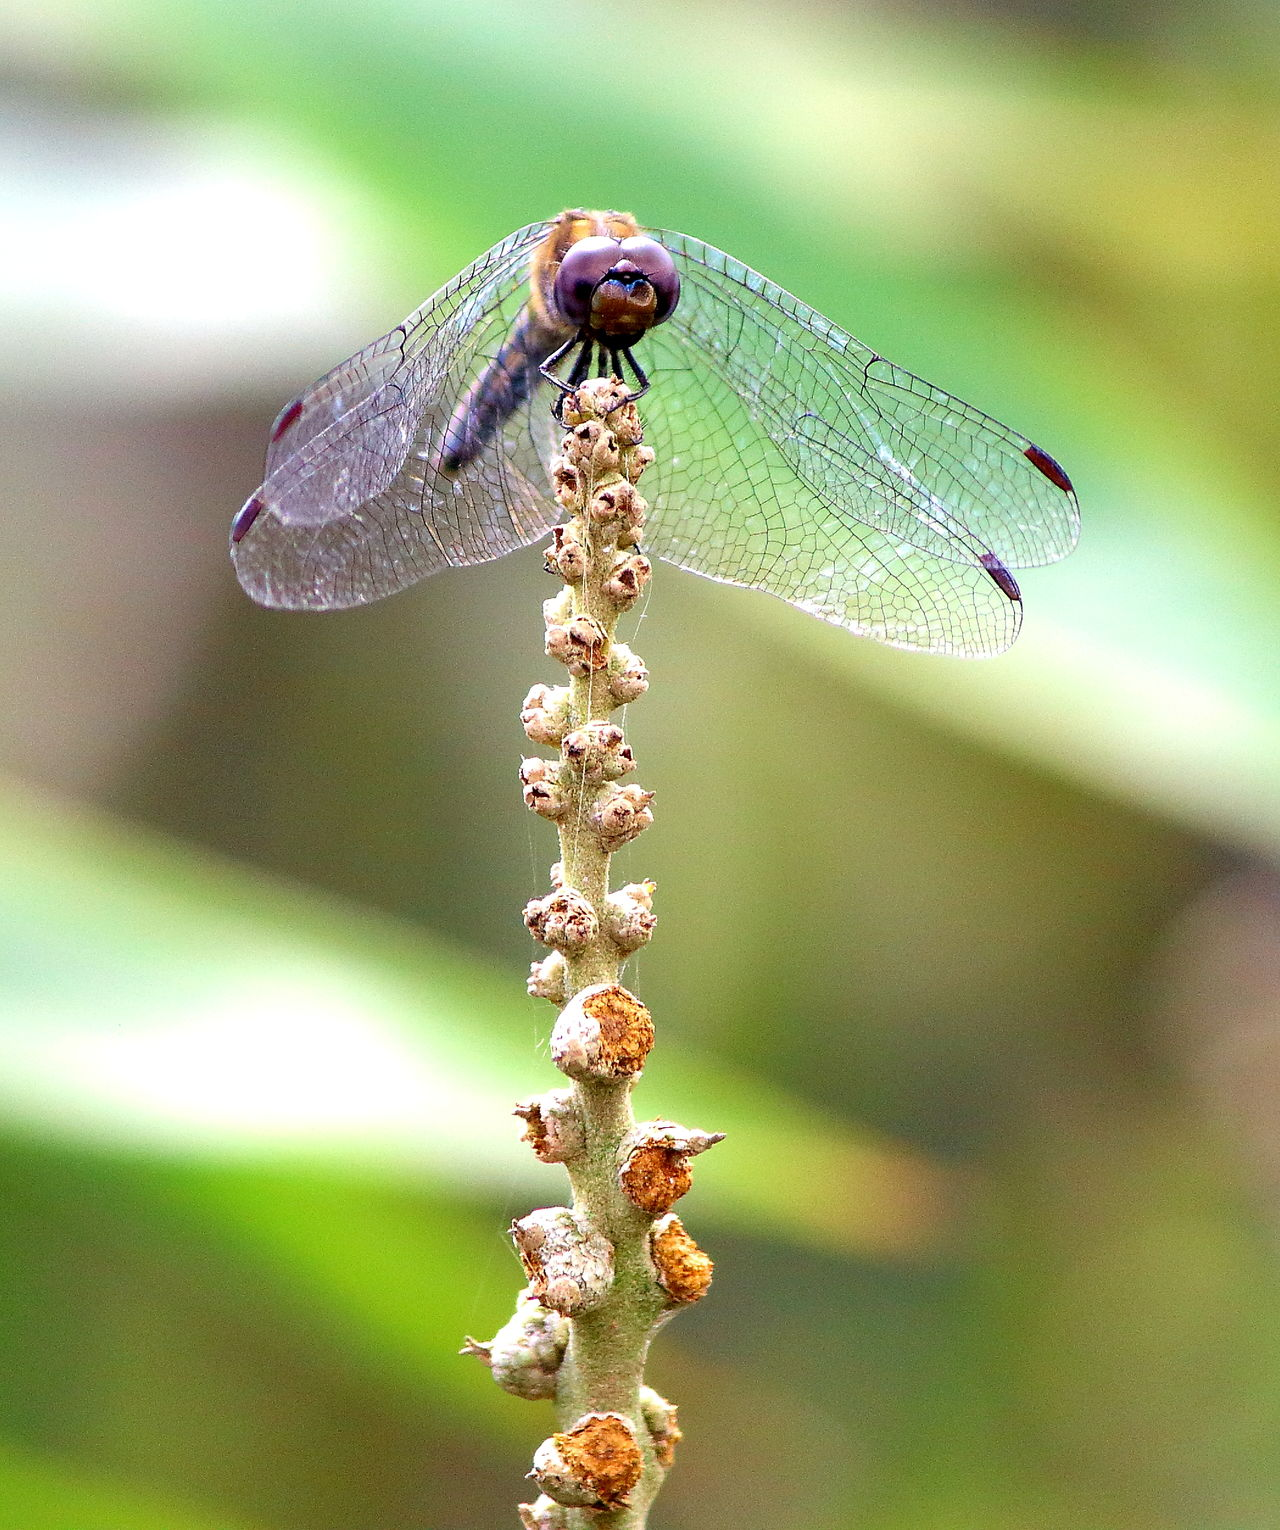 This little dragon fly surely caught my eyes and the camera lens too. Insect Animal Themes Animals In The Wild One Animal Animal Wildlife Nature No People Close-up Plant Day Bee Beauty In Nature Buzzing Outdoors Fragility Freshness Landscape Blue Scenics Beauty In Nature Weather Nature